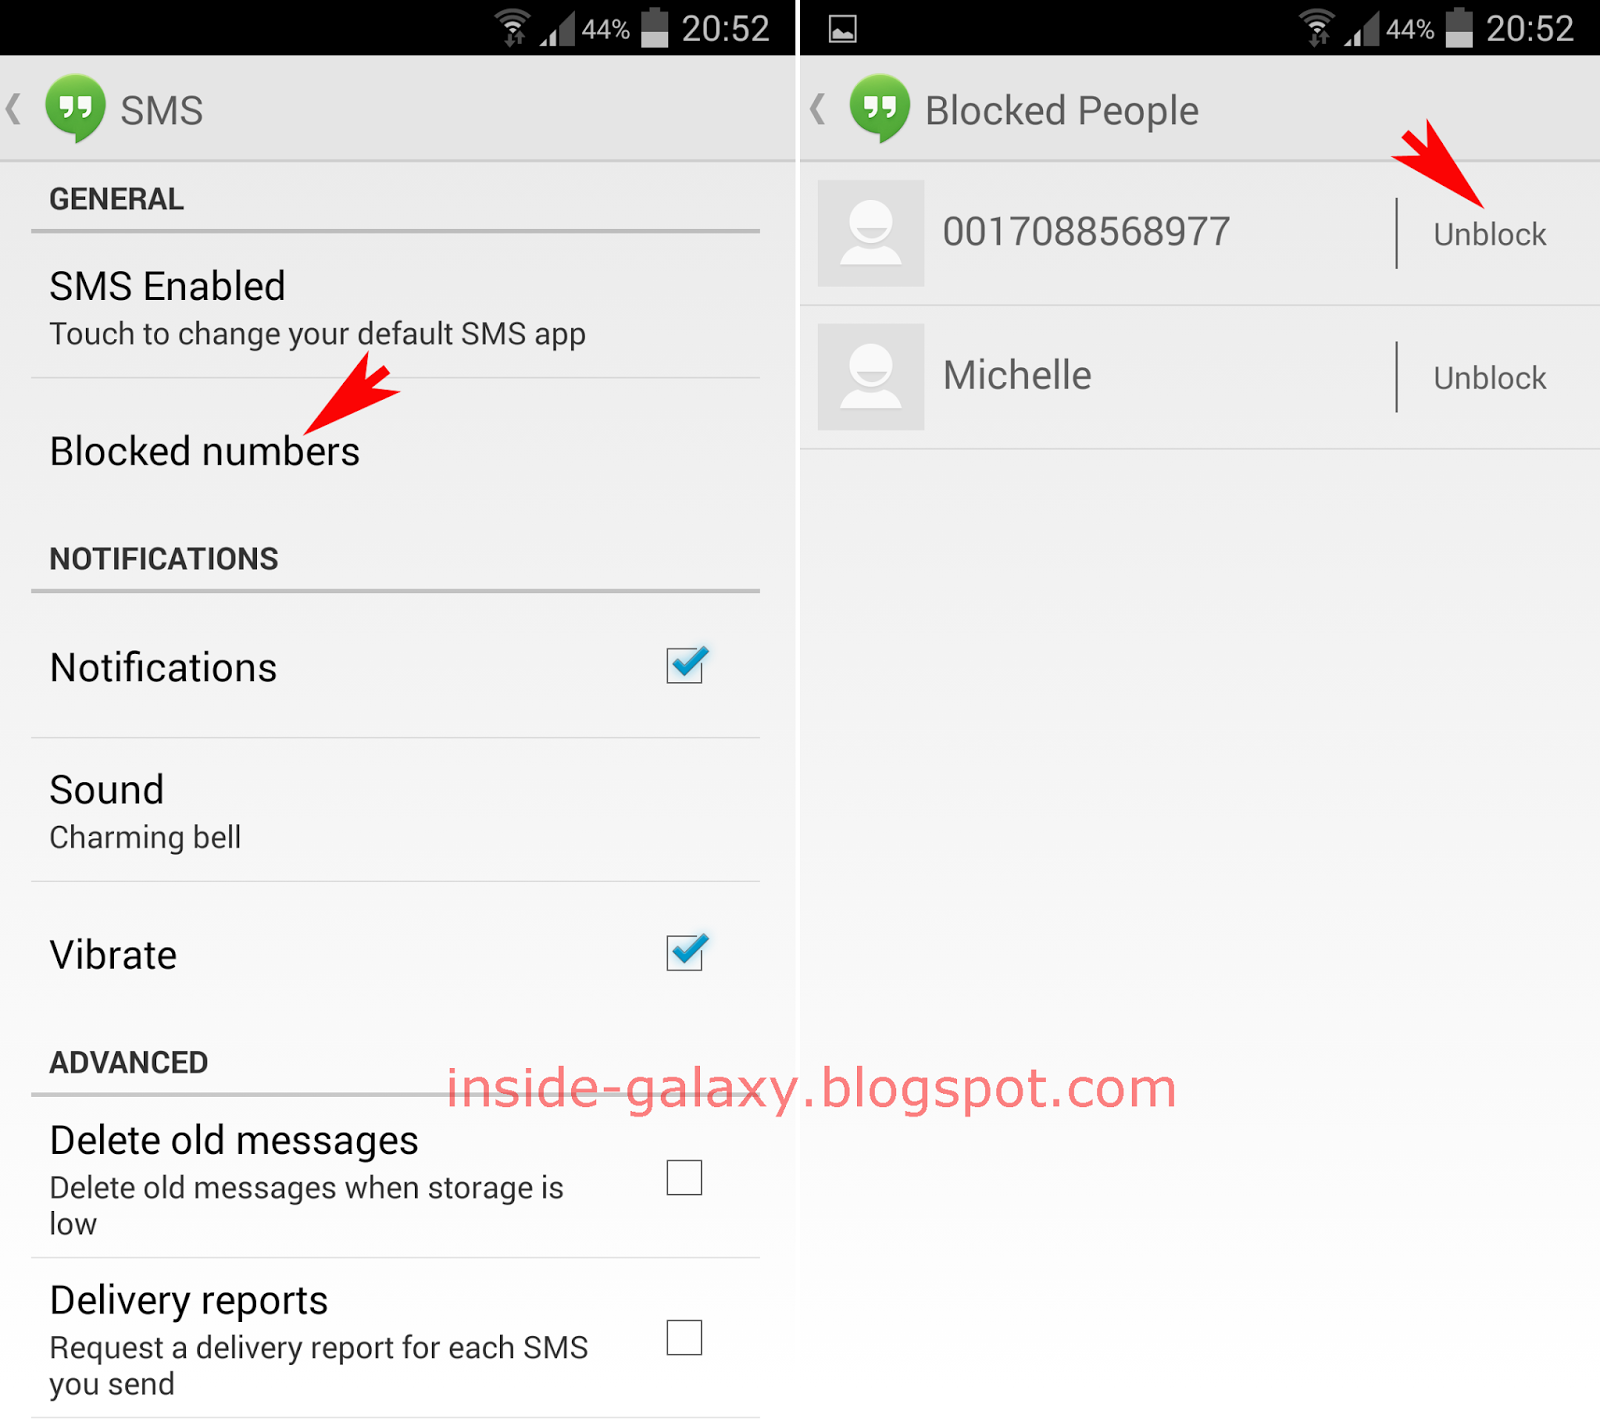 Samsung Galaxy S4: How to Remove a Contact from Blocked Numbers List